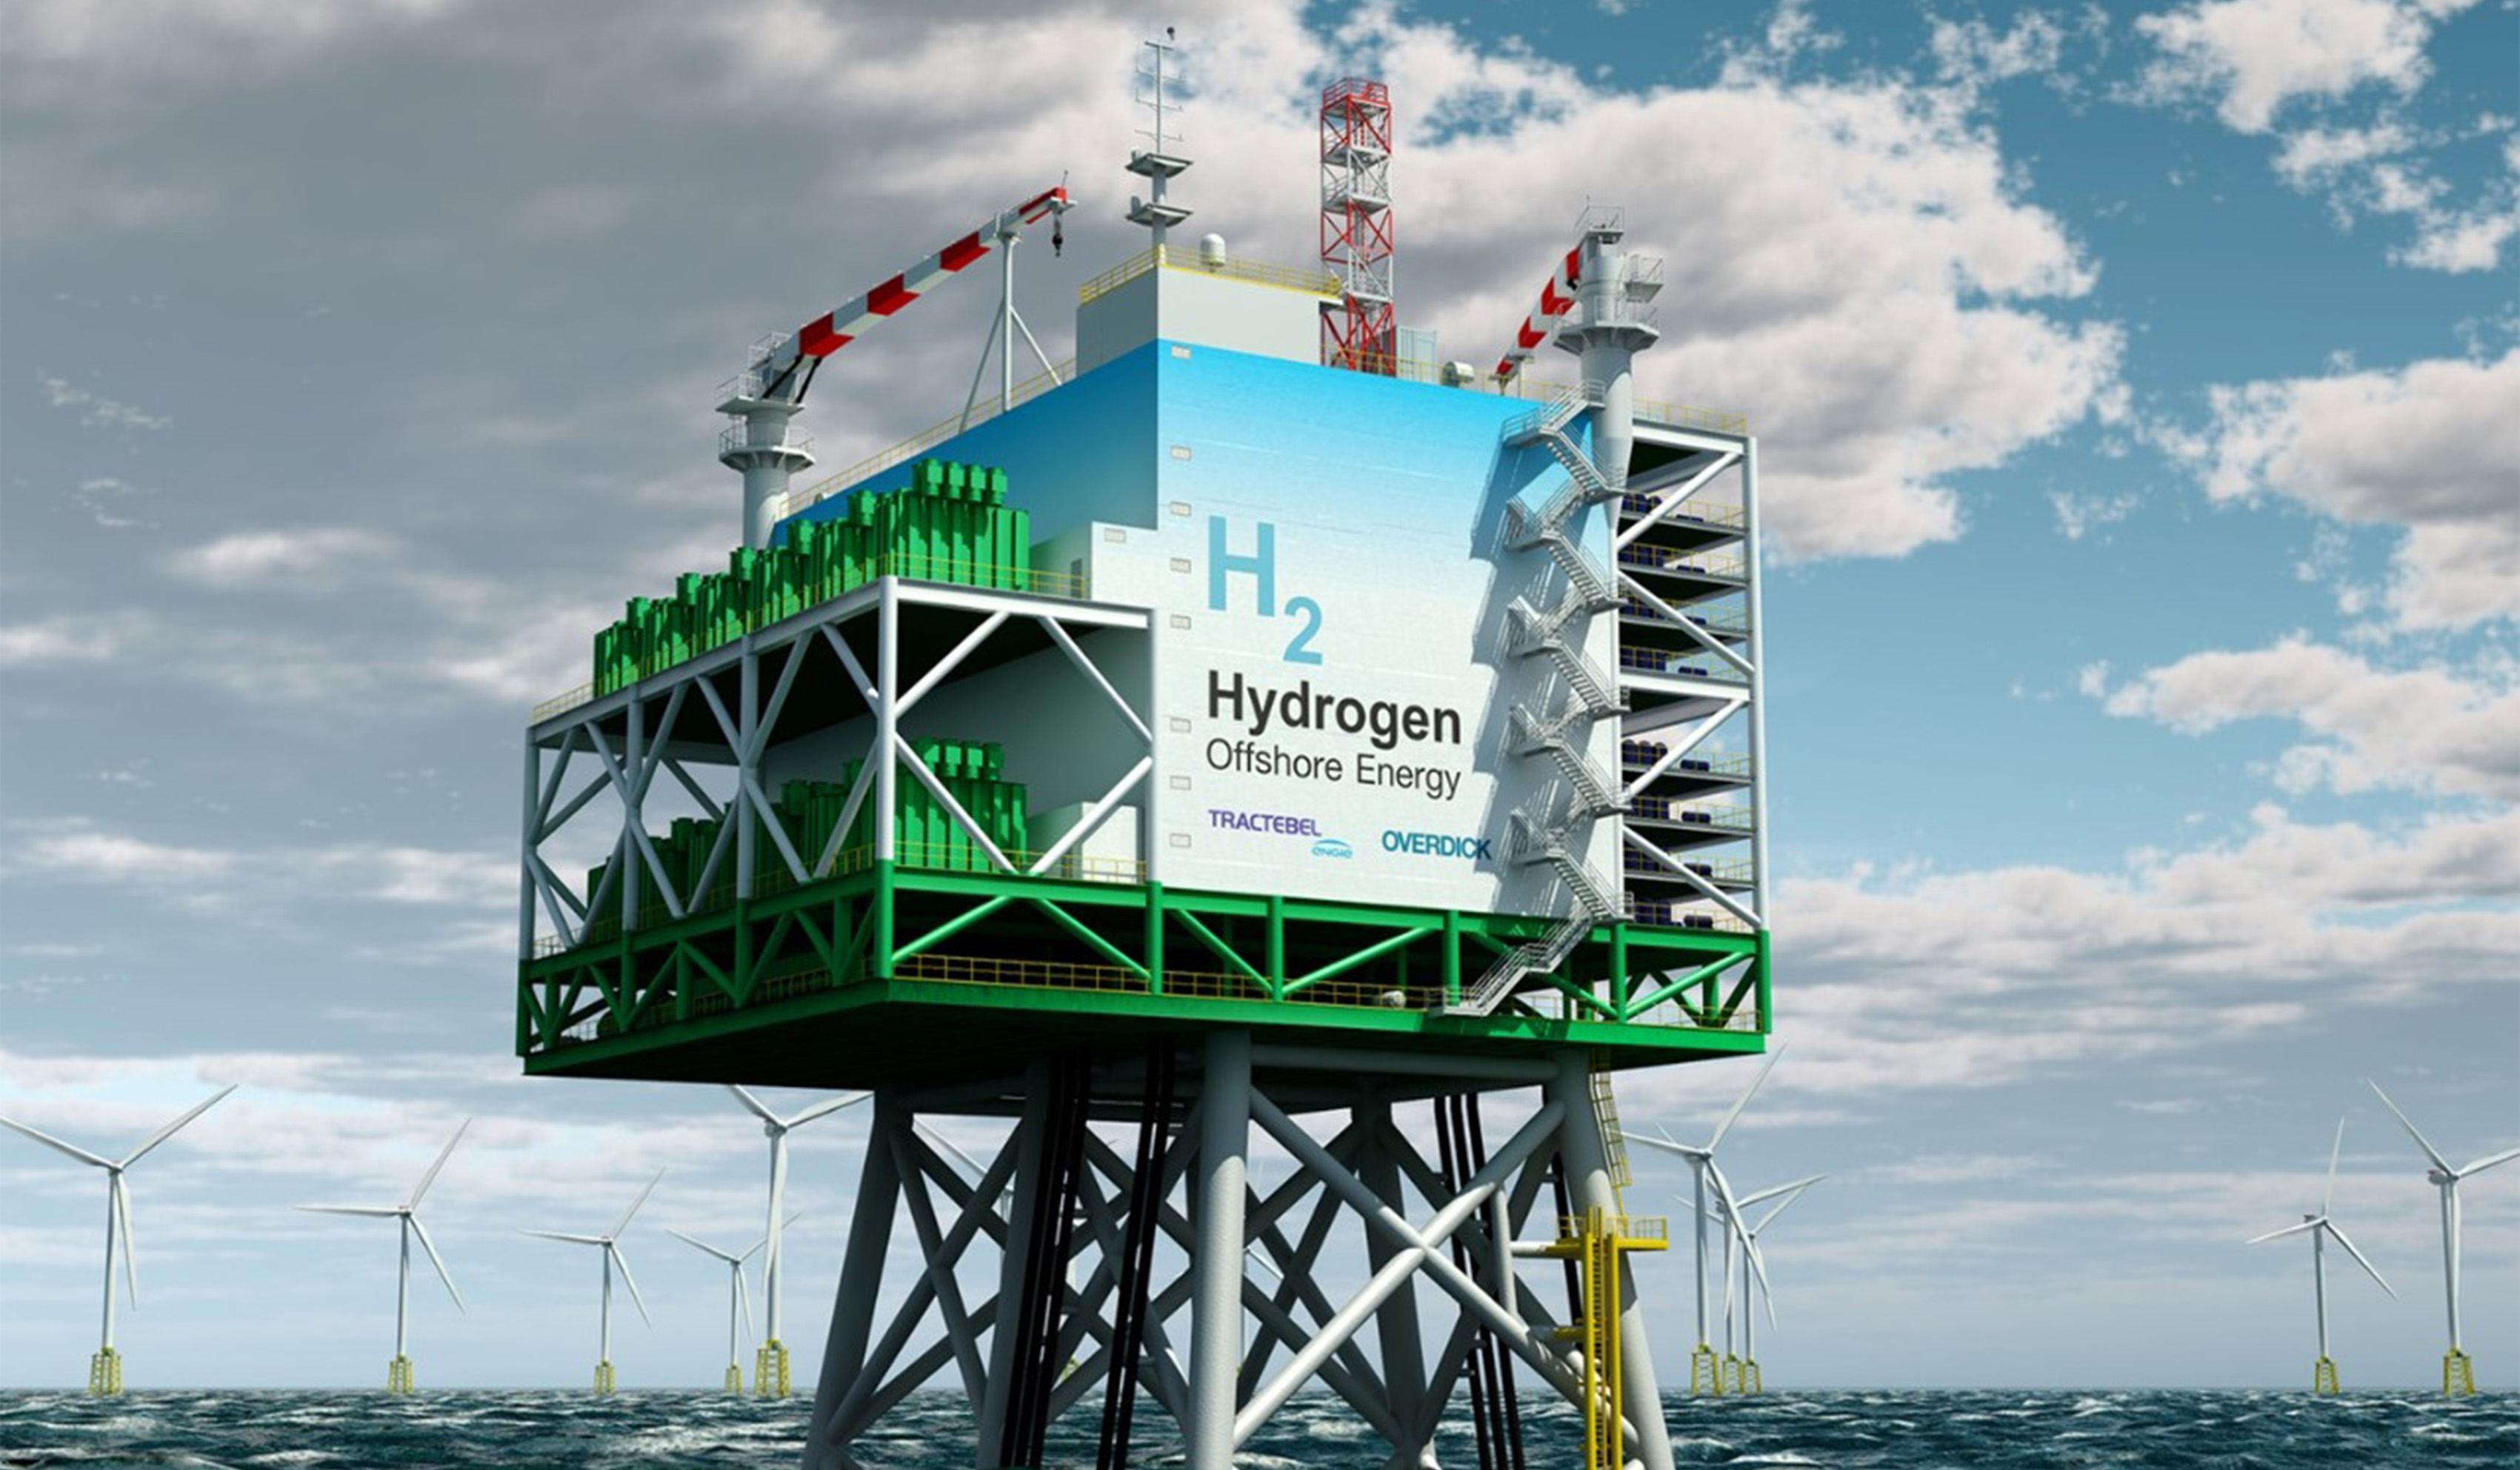 Plateforme de Production d'Hydrogène Offshore de 400 MW